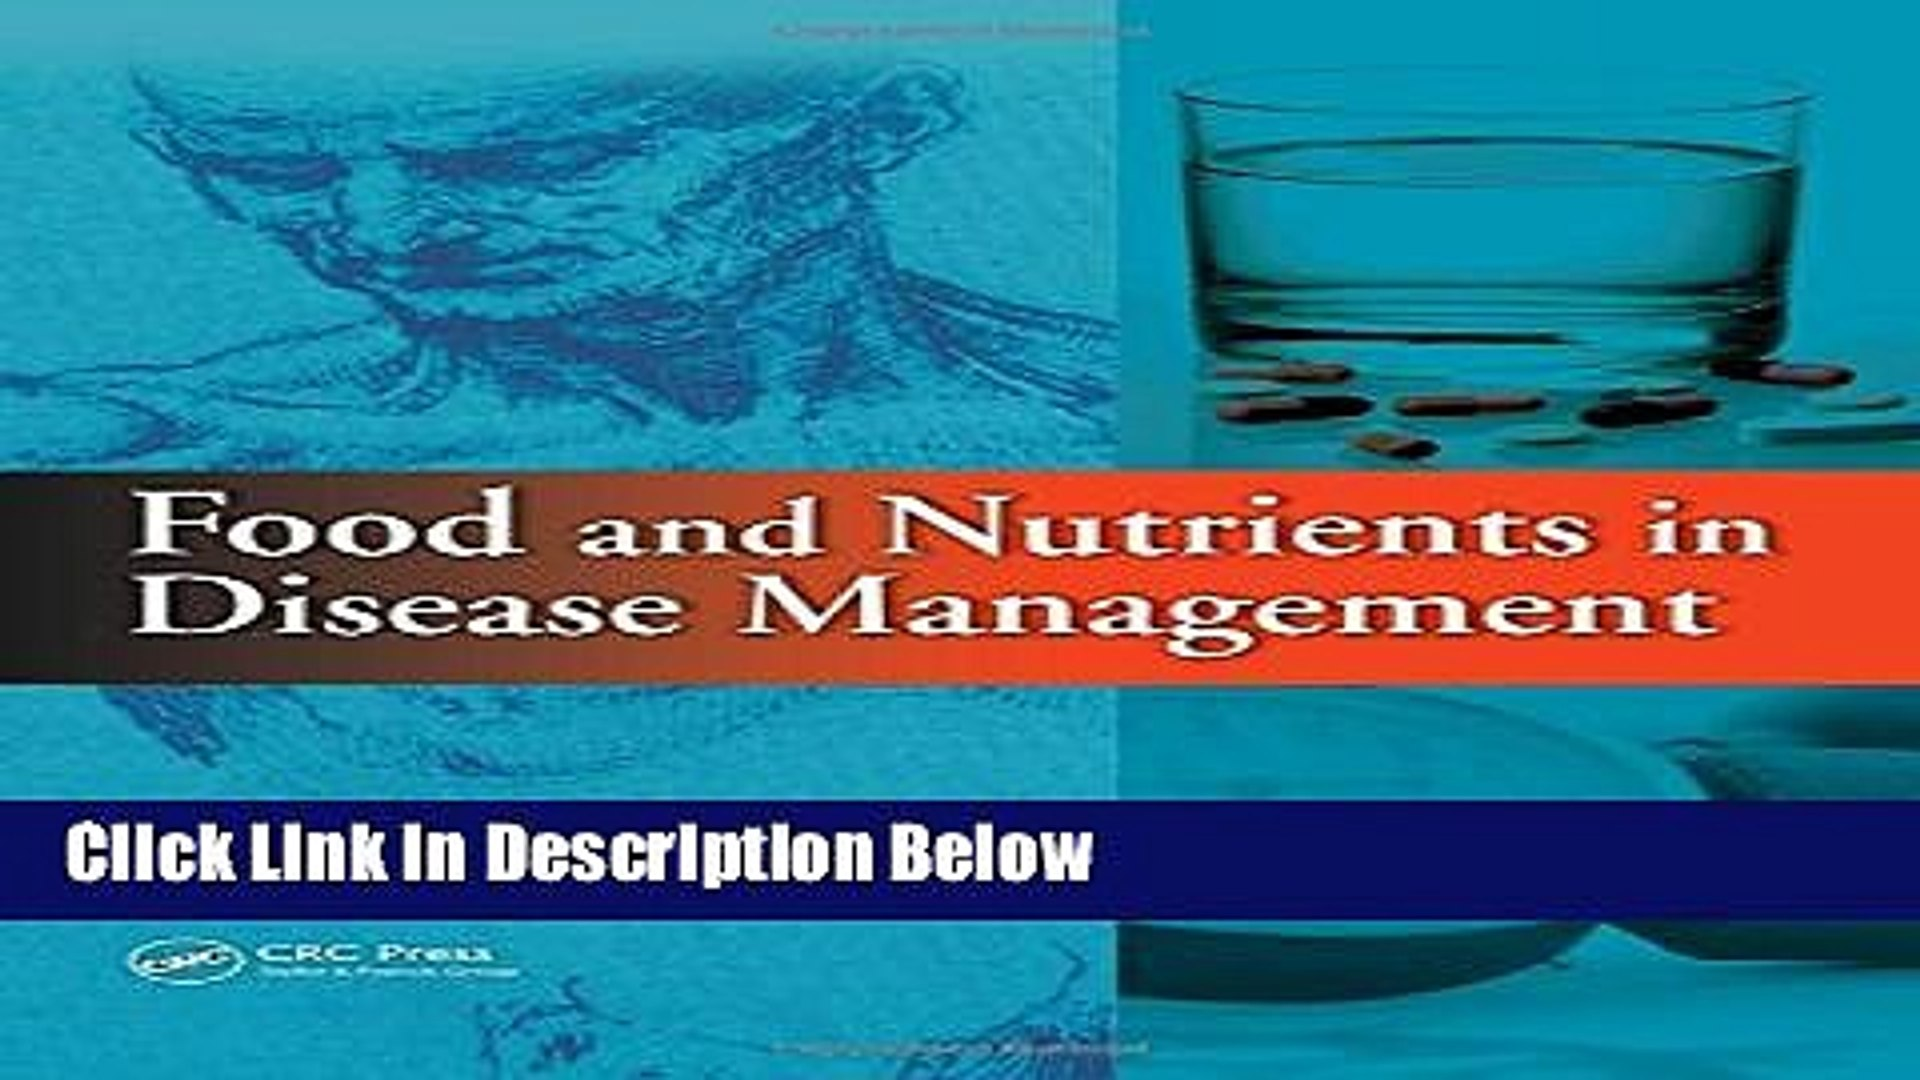 Food and Nutrients in Disease Management